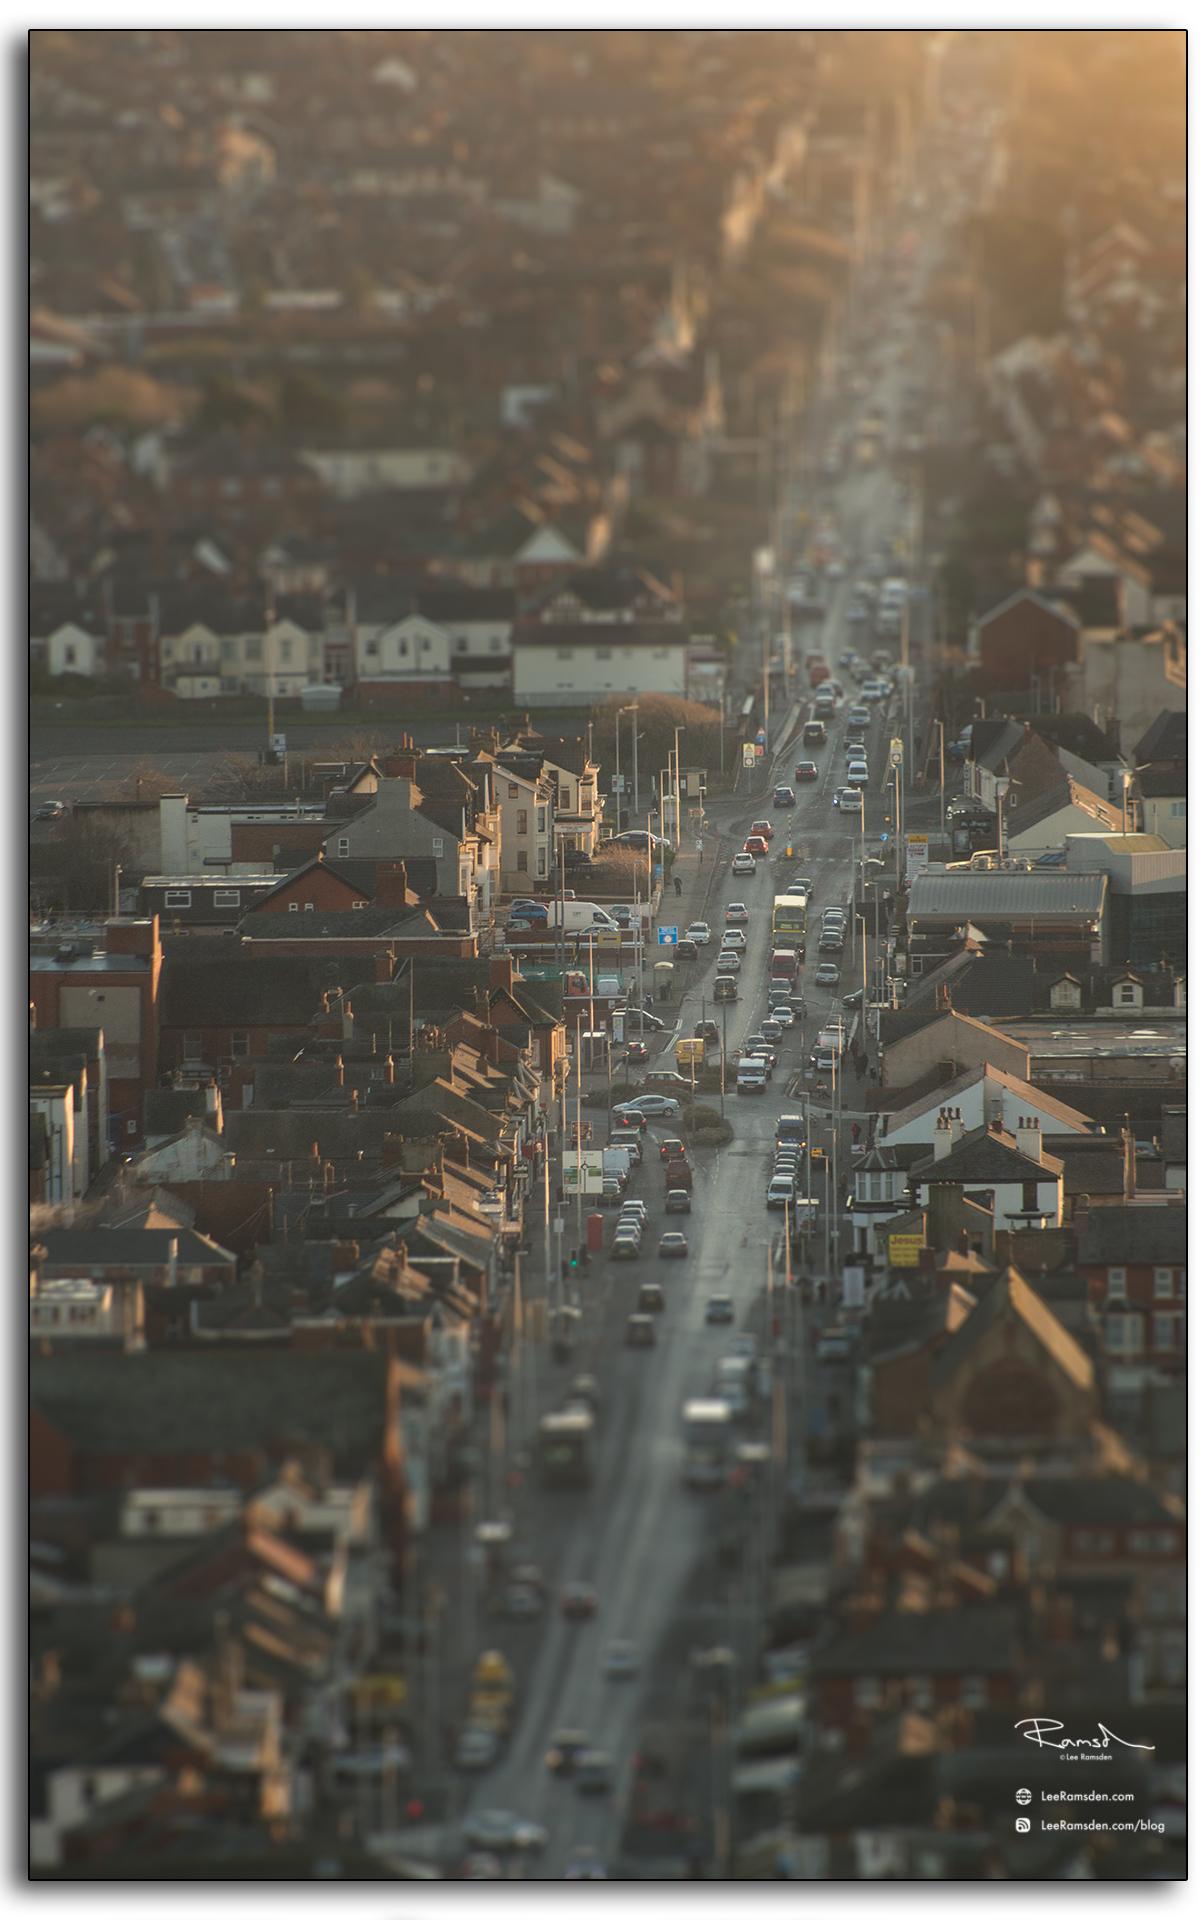 09 Blackpool Lytham Road Fylde B5262 Lancashire traffic roof tops view from top of the Tower England abstract photography by Lee Ramsden